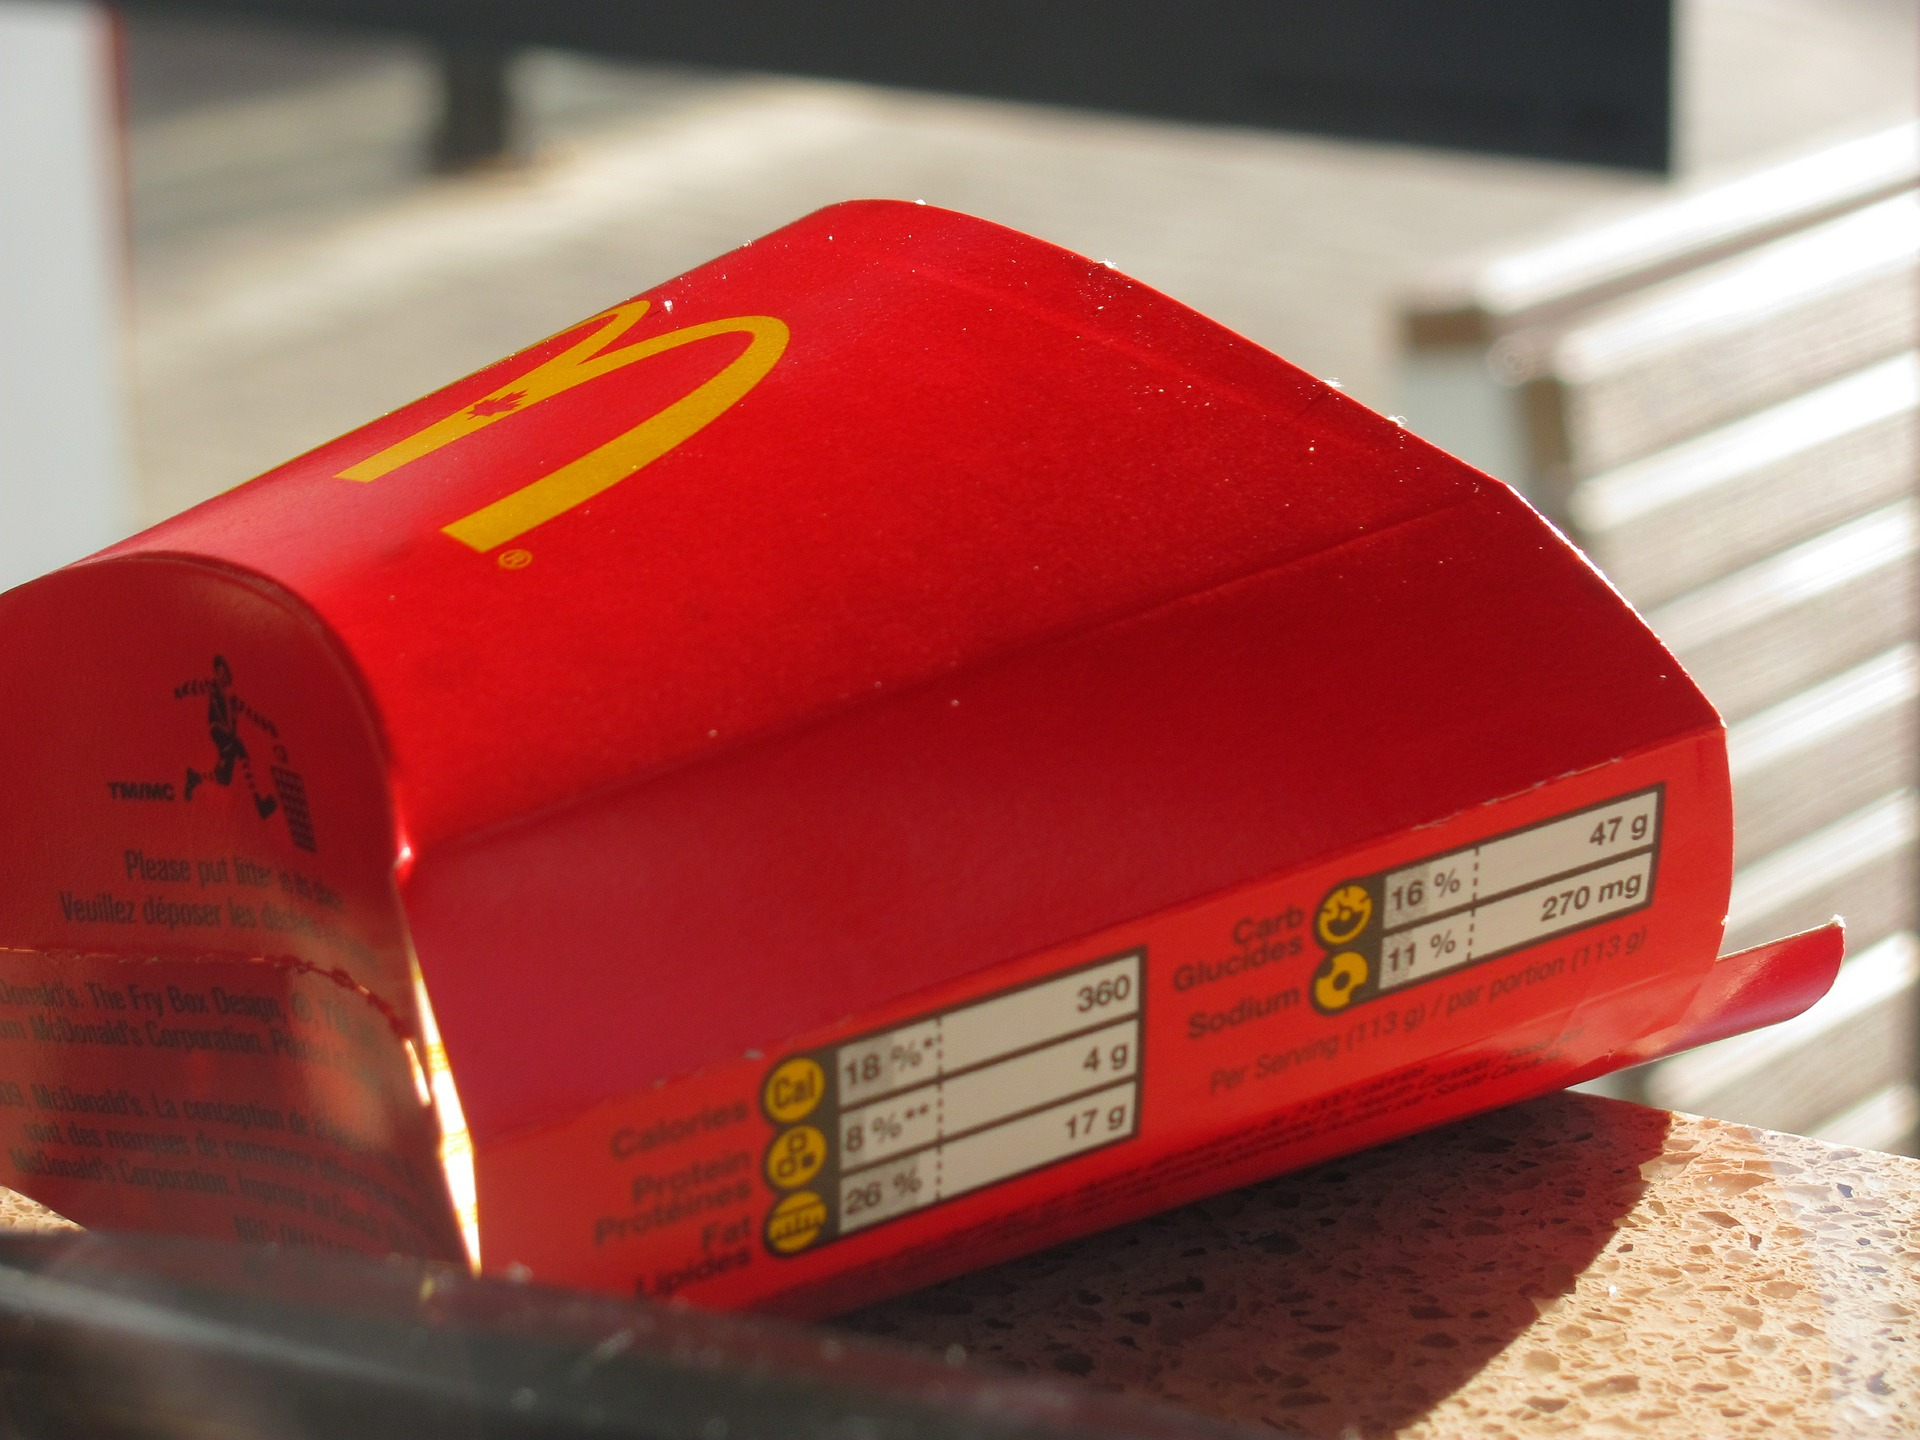 Is The McDonald's Lawsuit Smart PR?